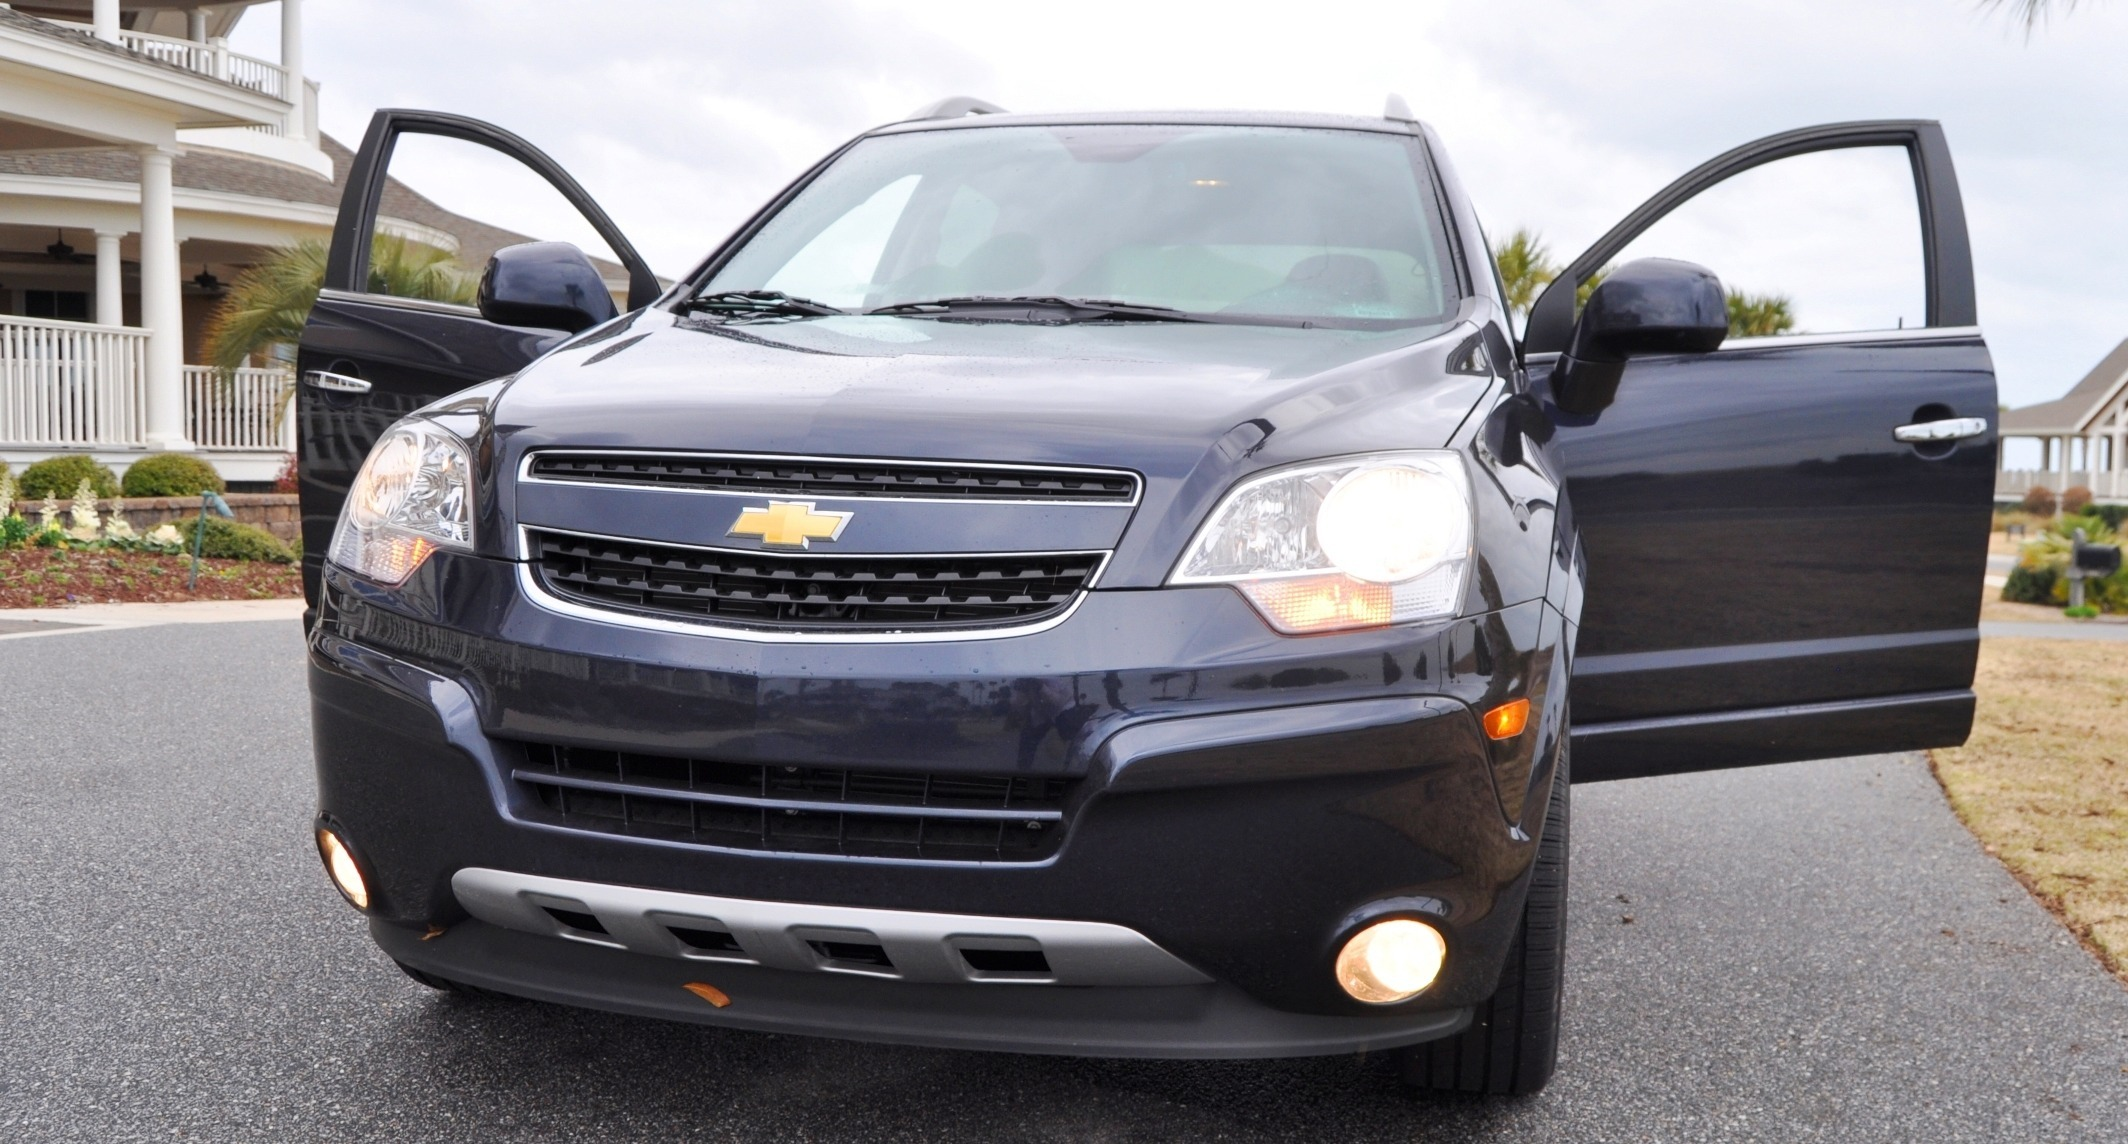 road test review 60 photos 2014 chevrolet captiva 2011 holden captiva. Cars Review. Best American Auto & Cars Review